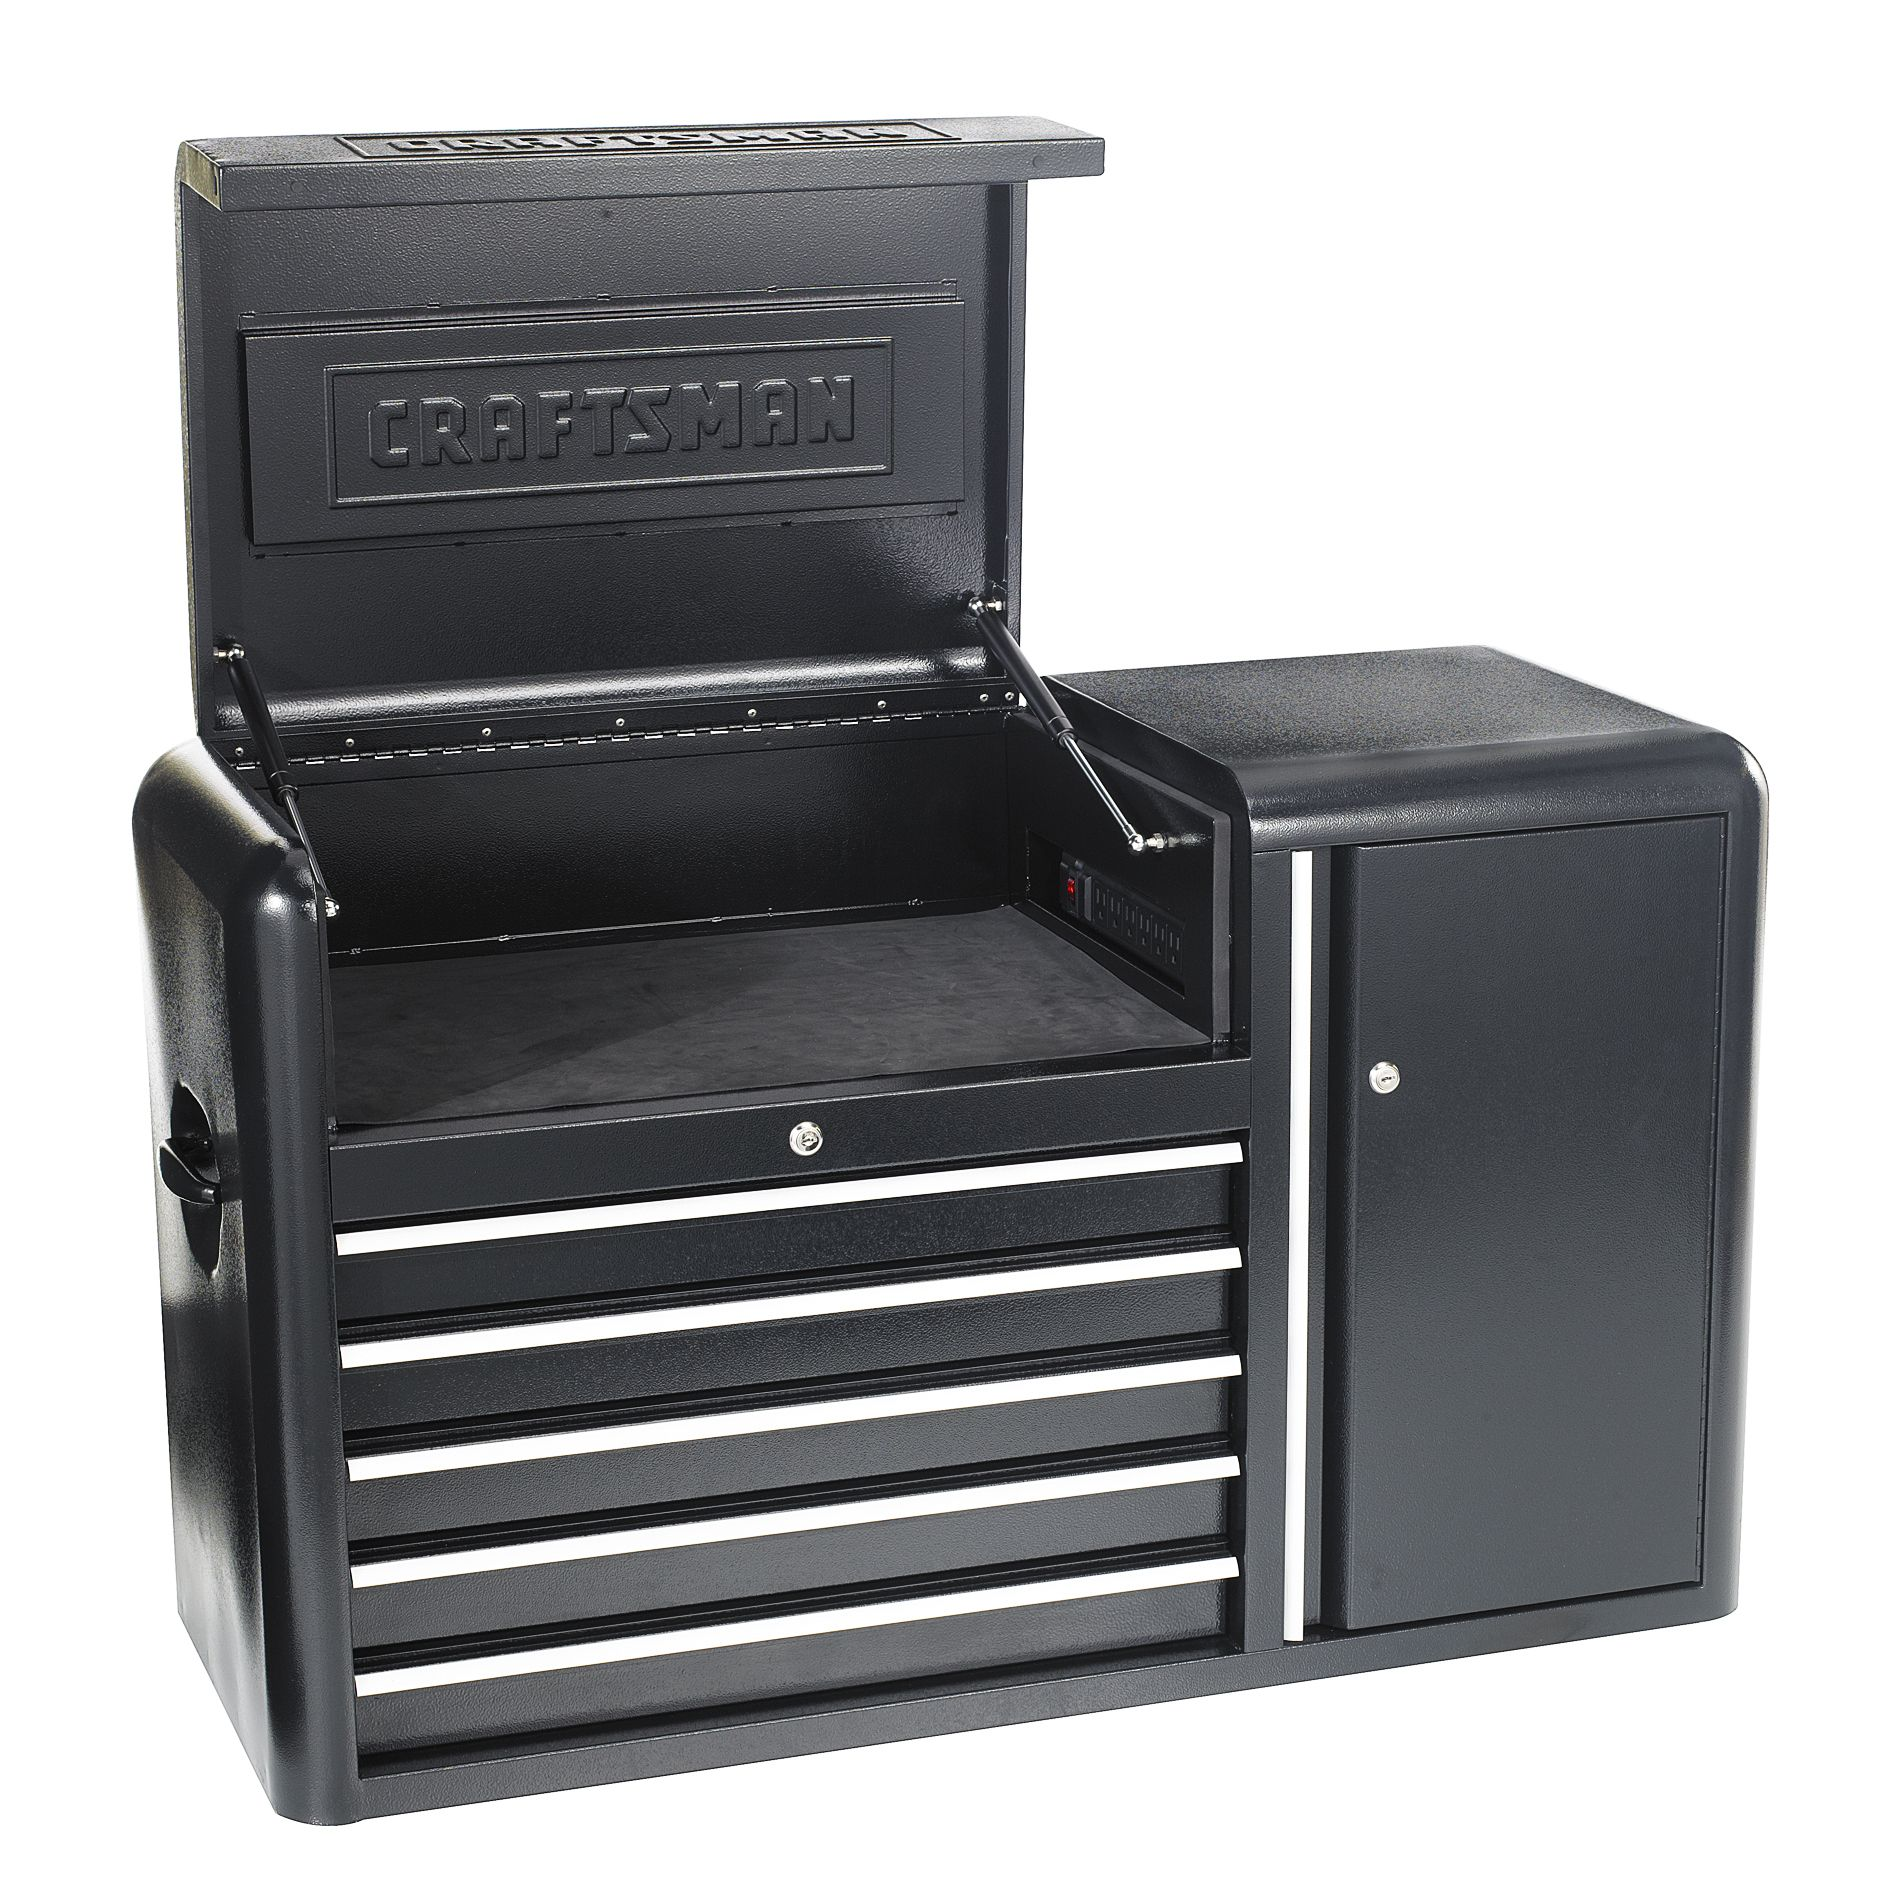 Craftsman 5-Drawer, 43- Inch Contour Power Top Chest